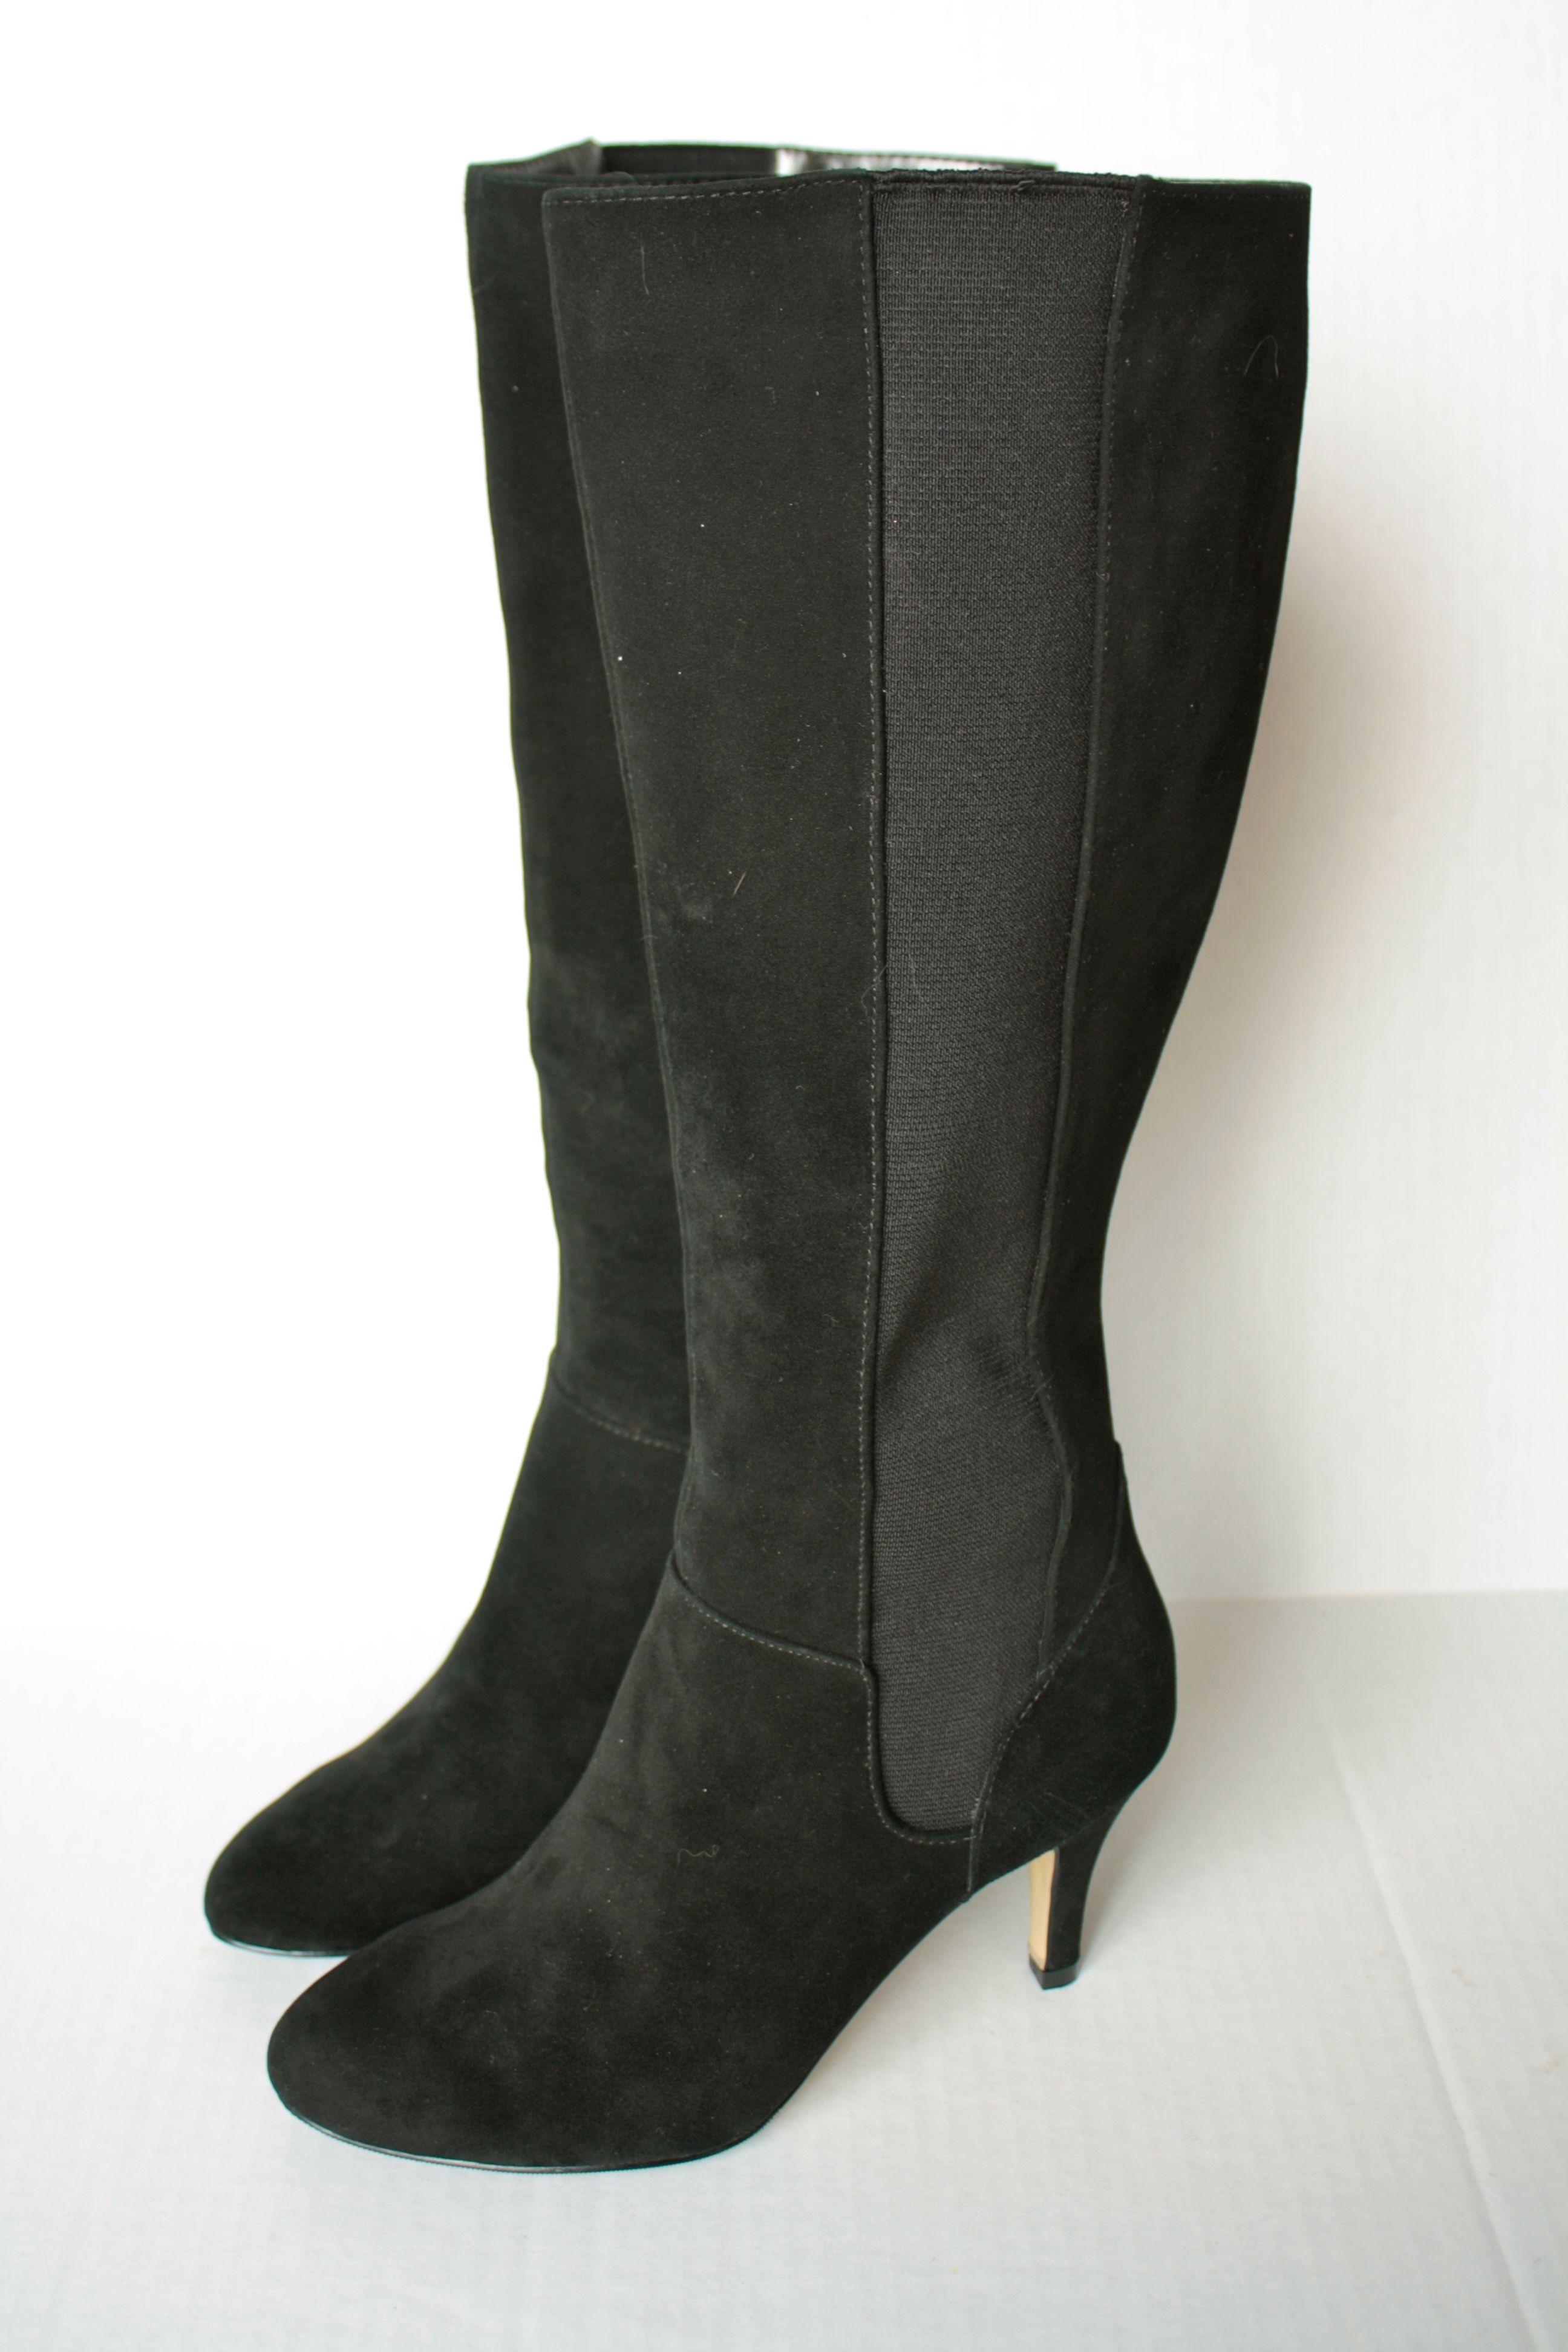 Adrienne Vittadini Boots sold by Array